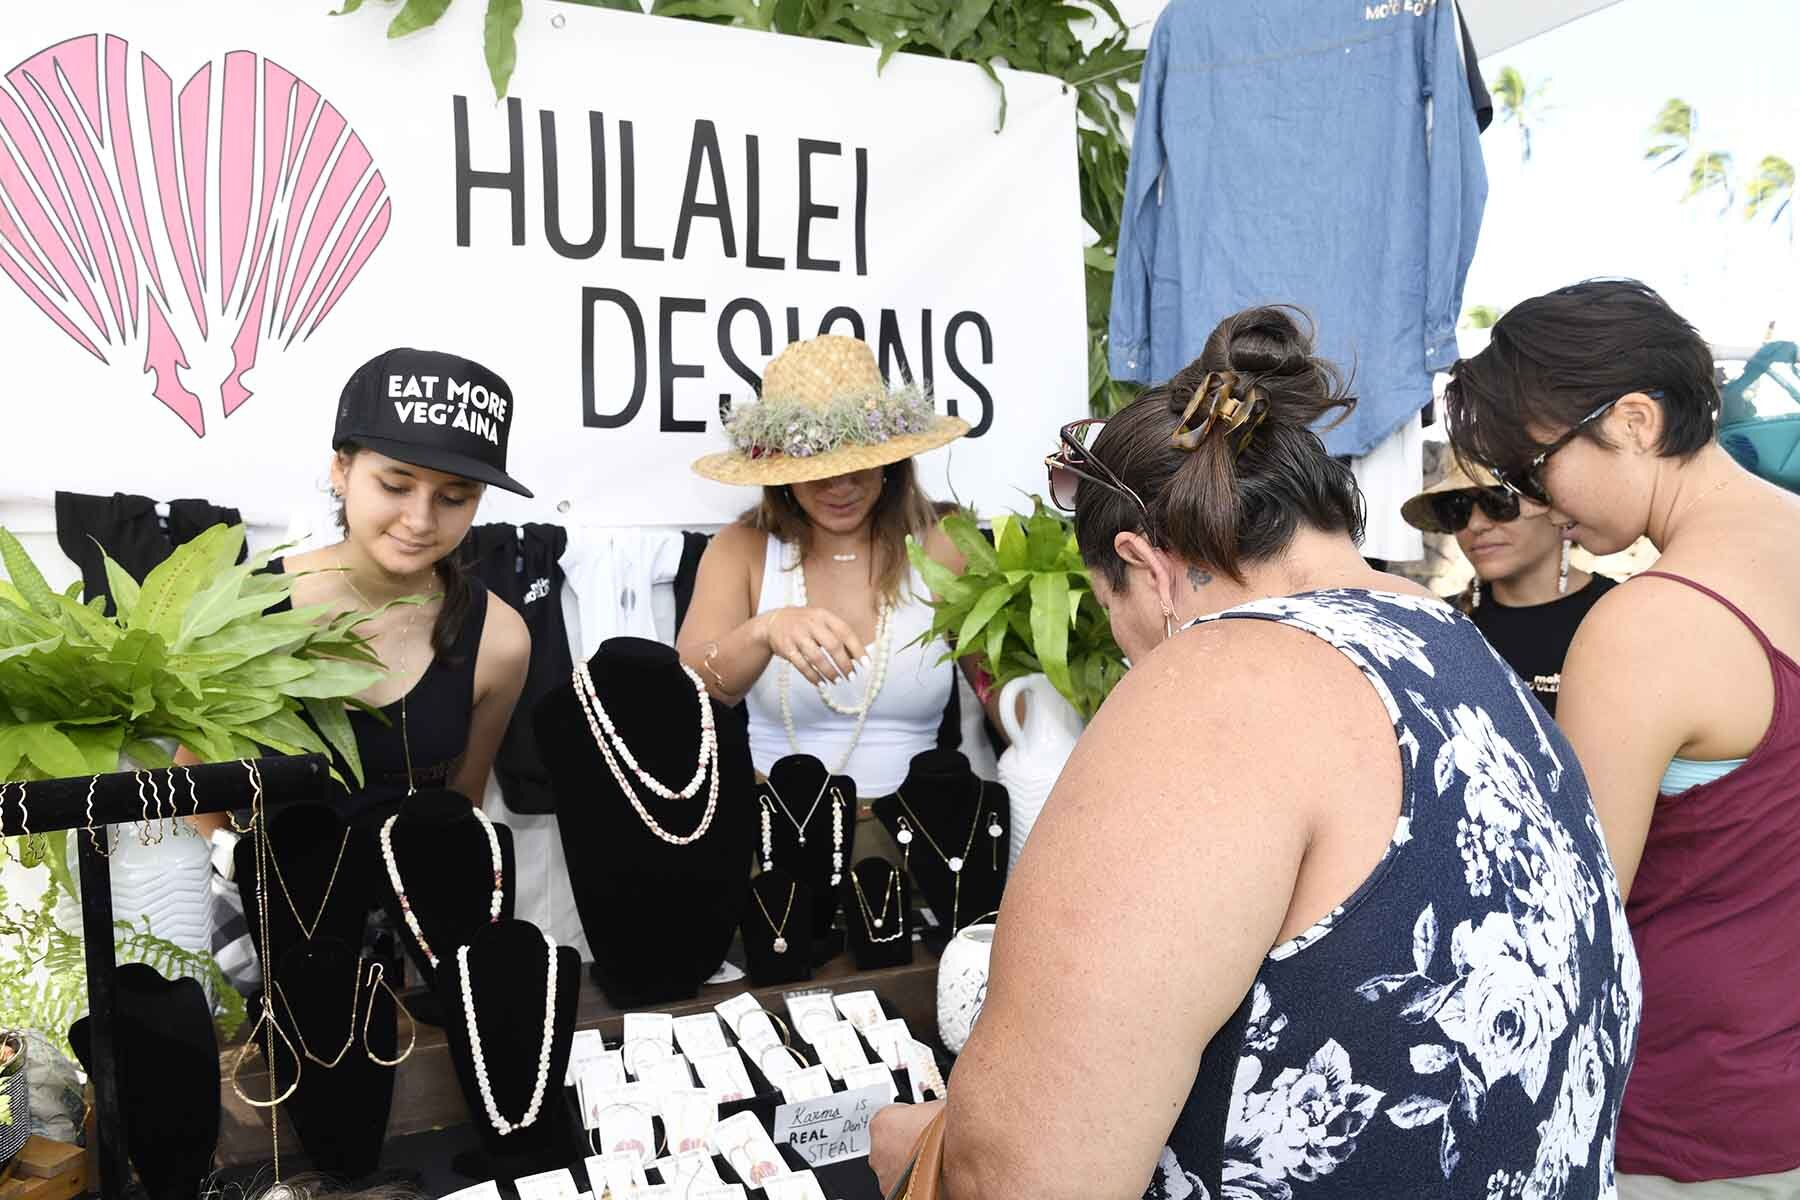 Hualalei Designs from Molokai will feature their shell jewelry and Lauhala Papale made with aloha.